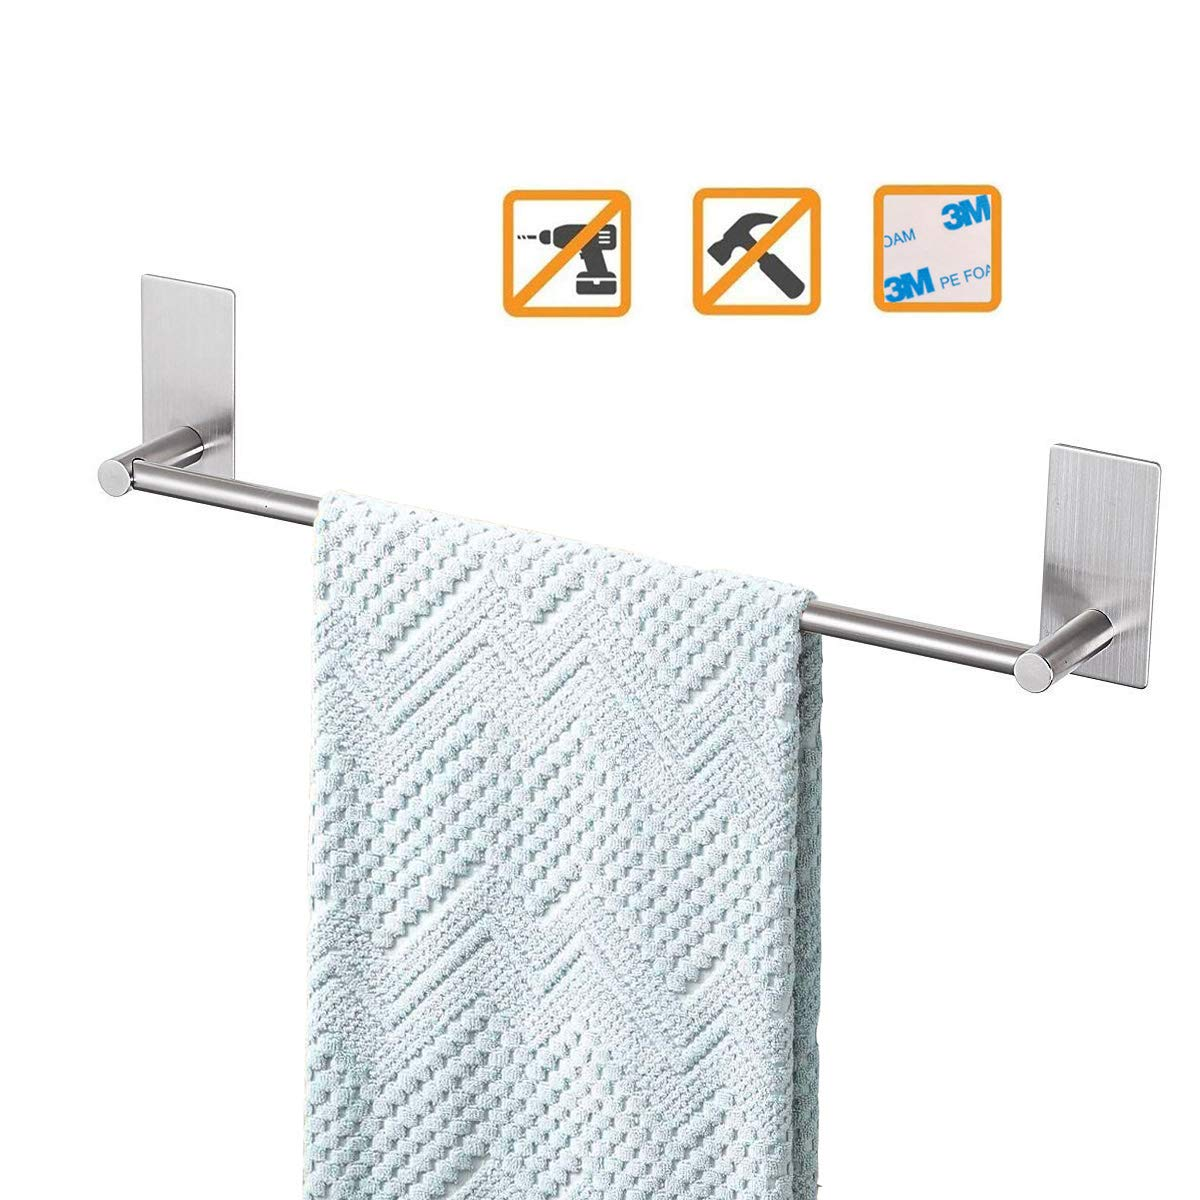 Bathroom Towel Bar 16inch, Easy Install with Self-Adhesive, NO Drilling on Walls, Premium SUS304 Stainless Steel - Brushed by Songtec (Image #1)